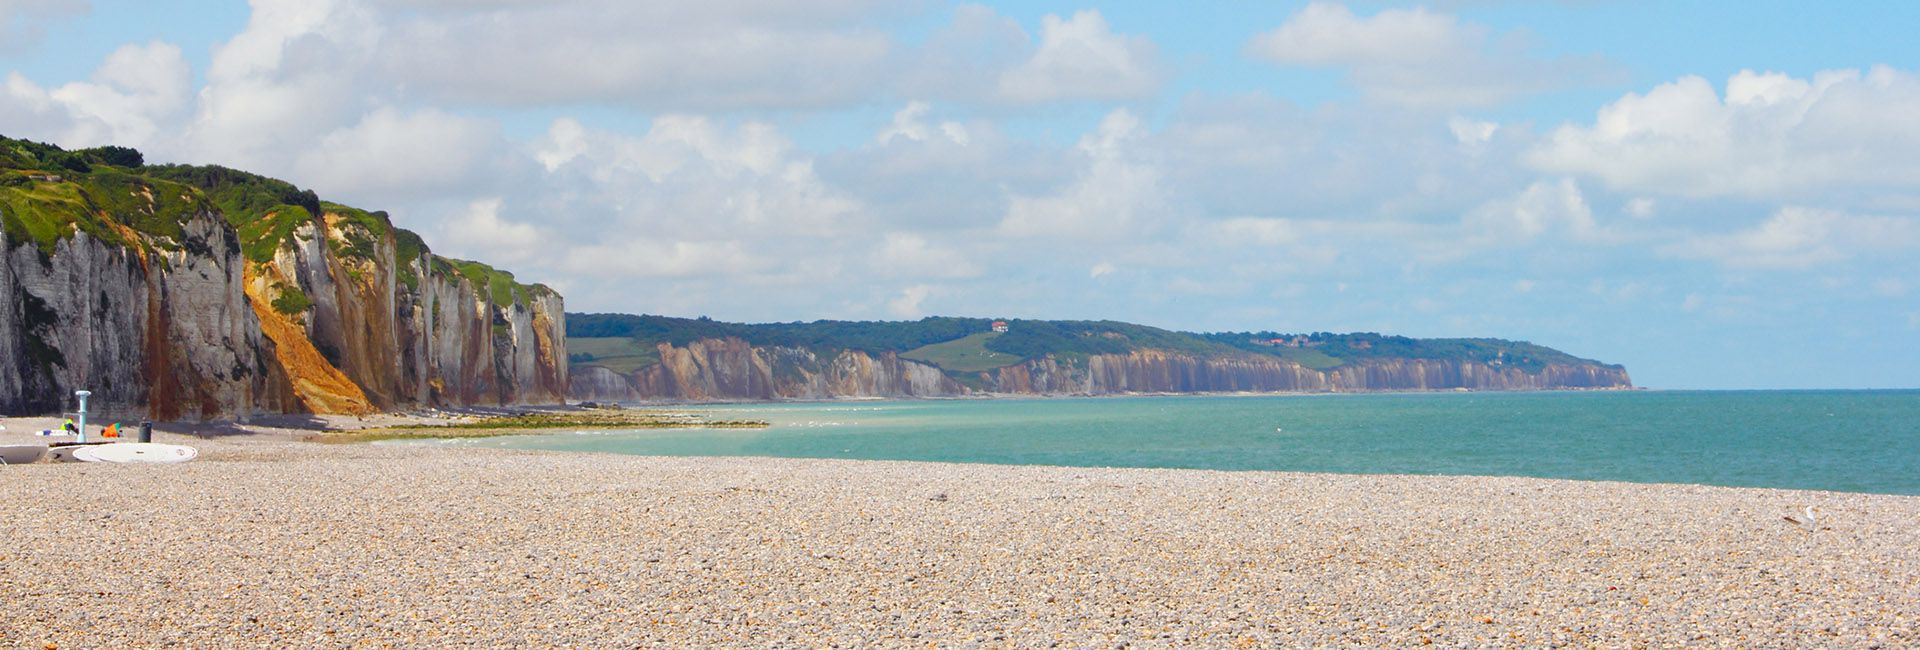 Beach in Dieppe